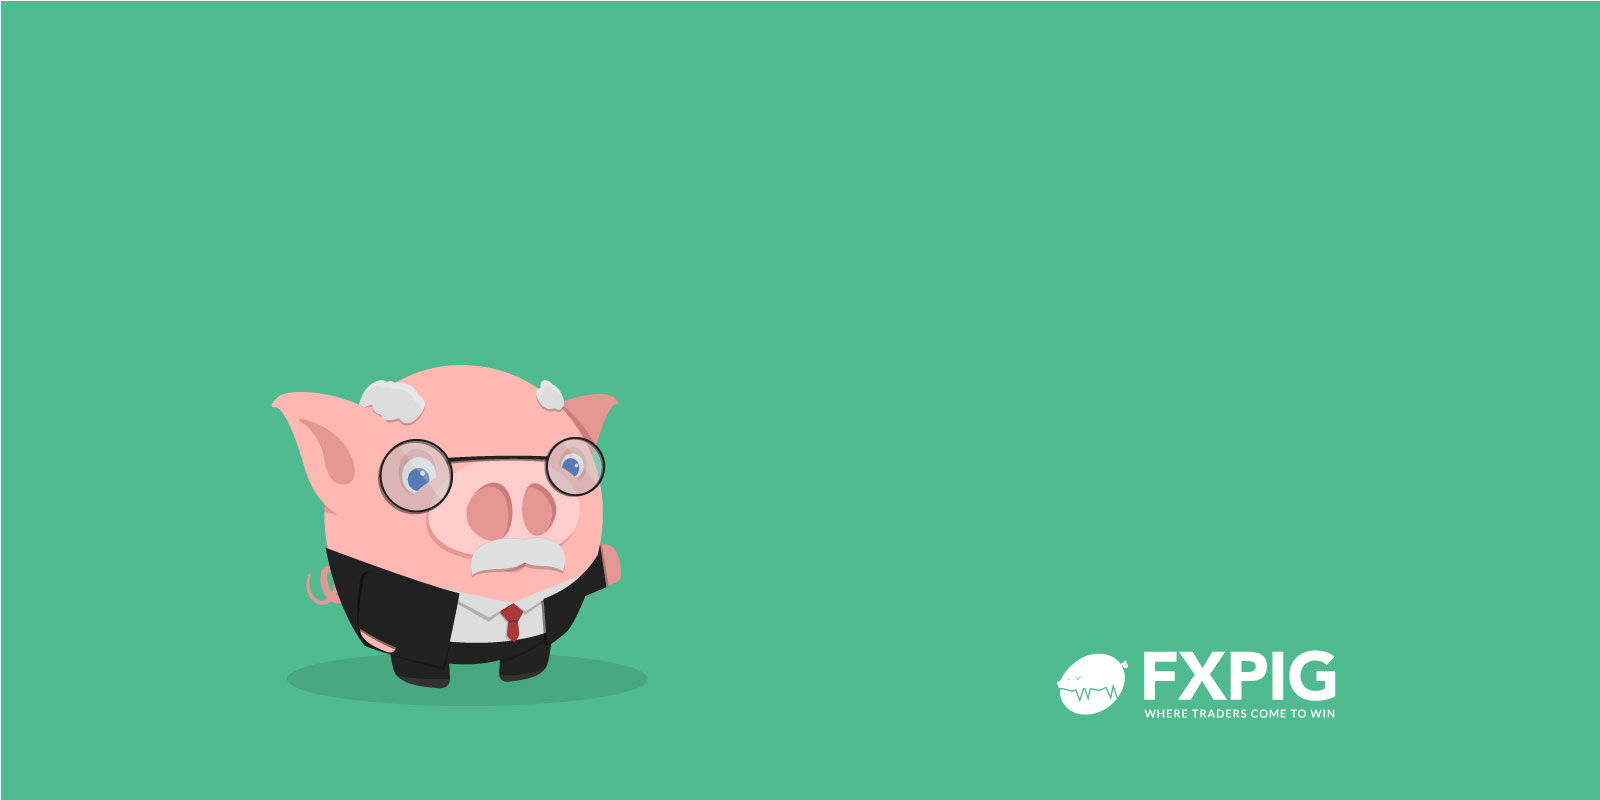 FX-trading-wisdom_Pig-Insider_rules-and-consistency_FXPIG